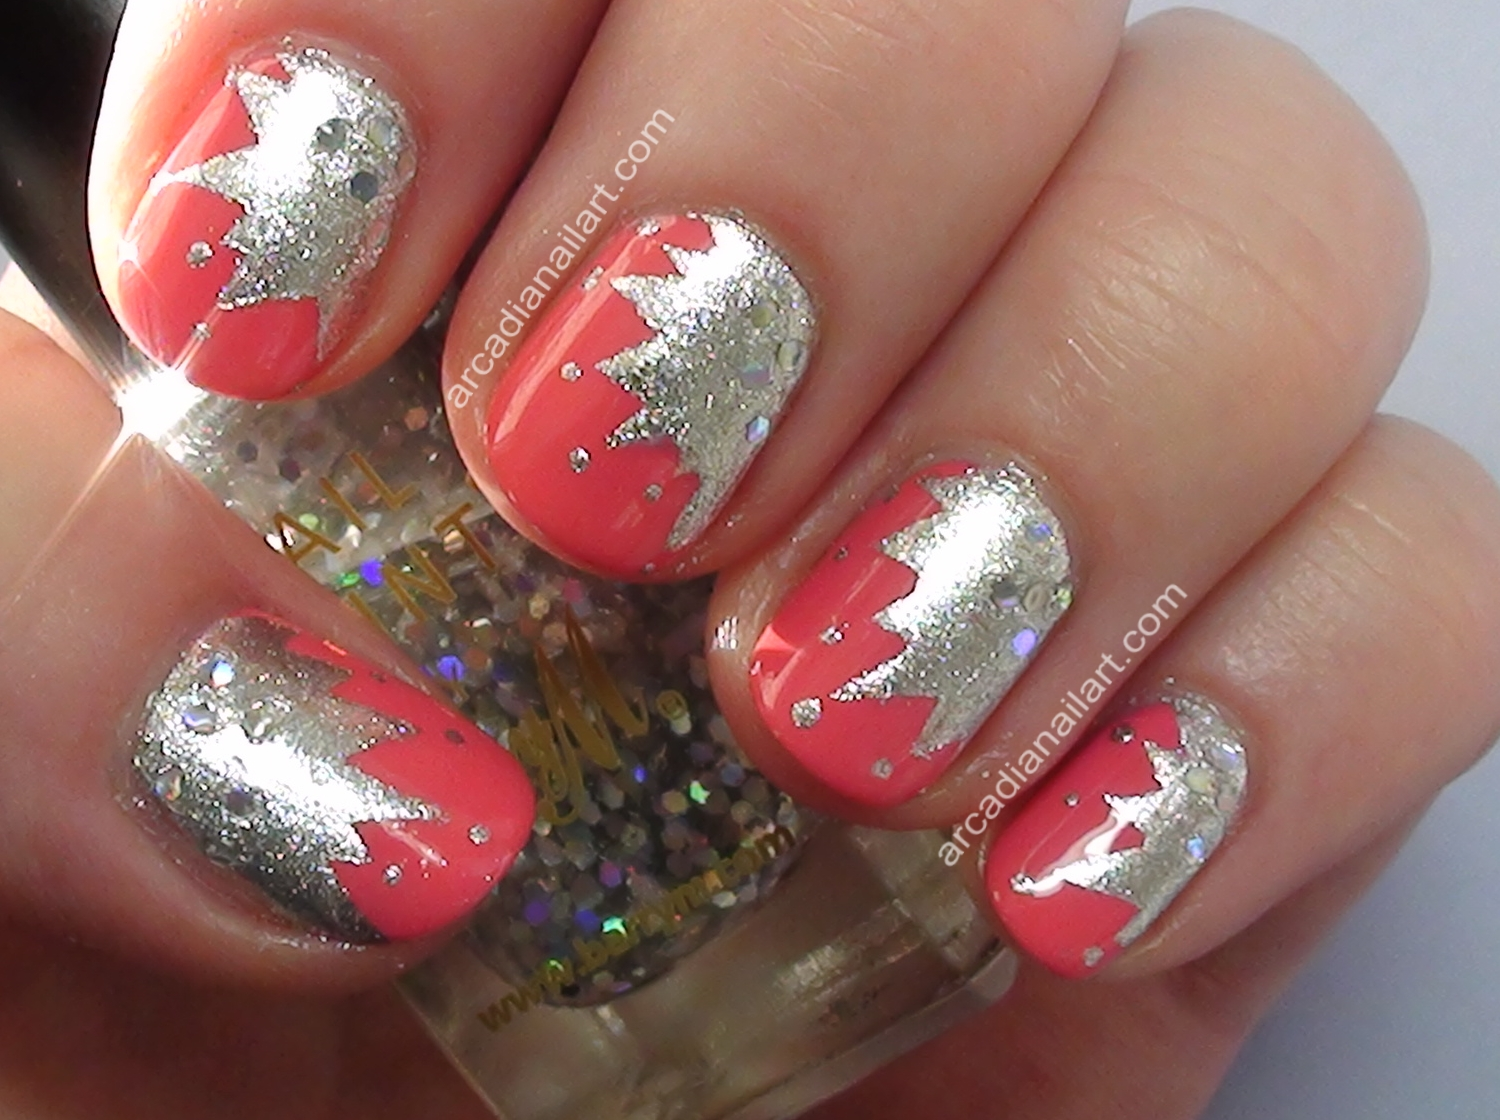 ArcadiaNailArt: Easy Starburst Nail Art Tape Tutorial